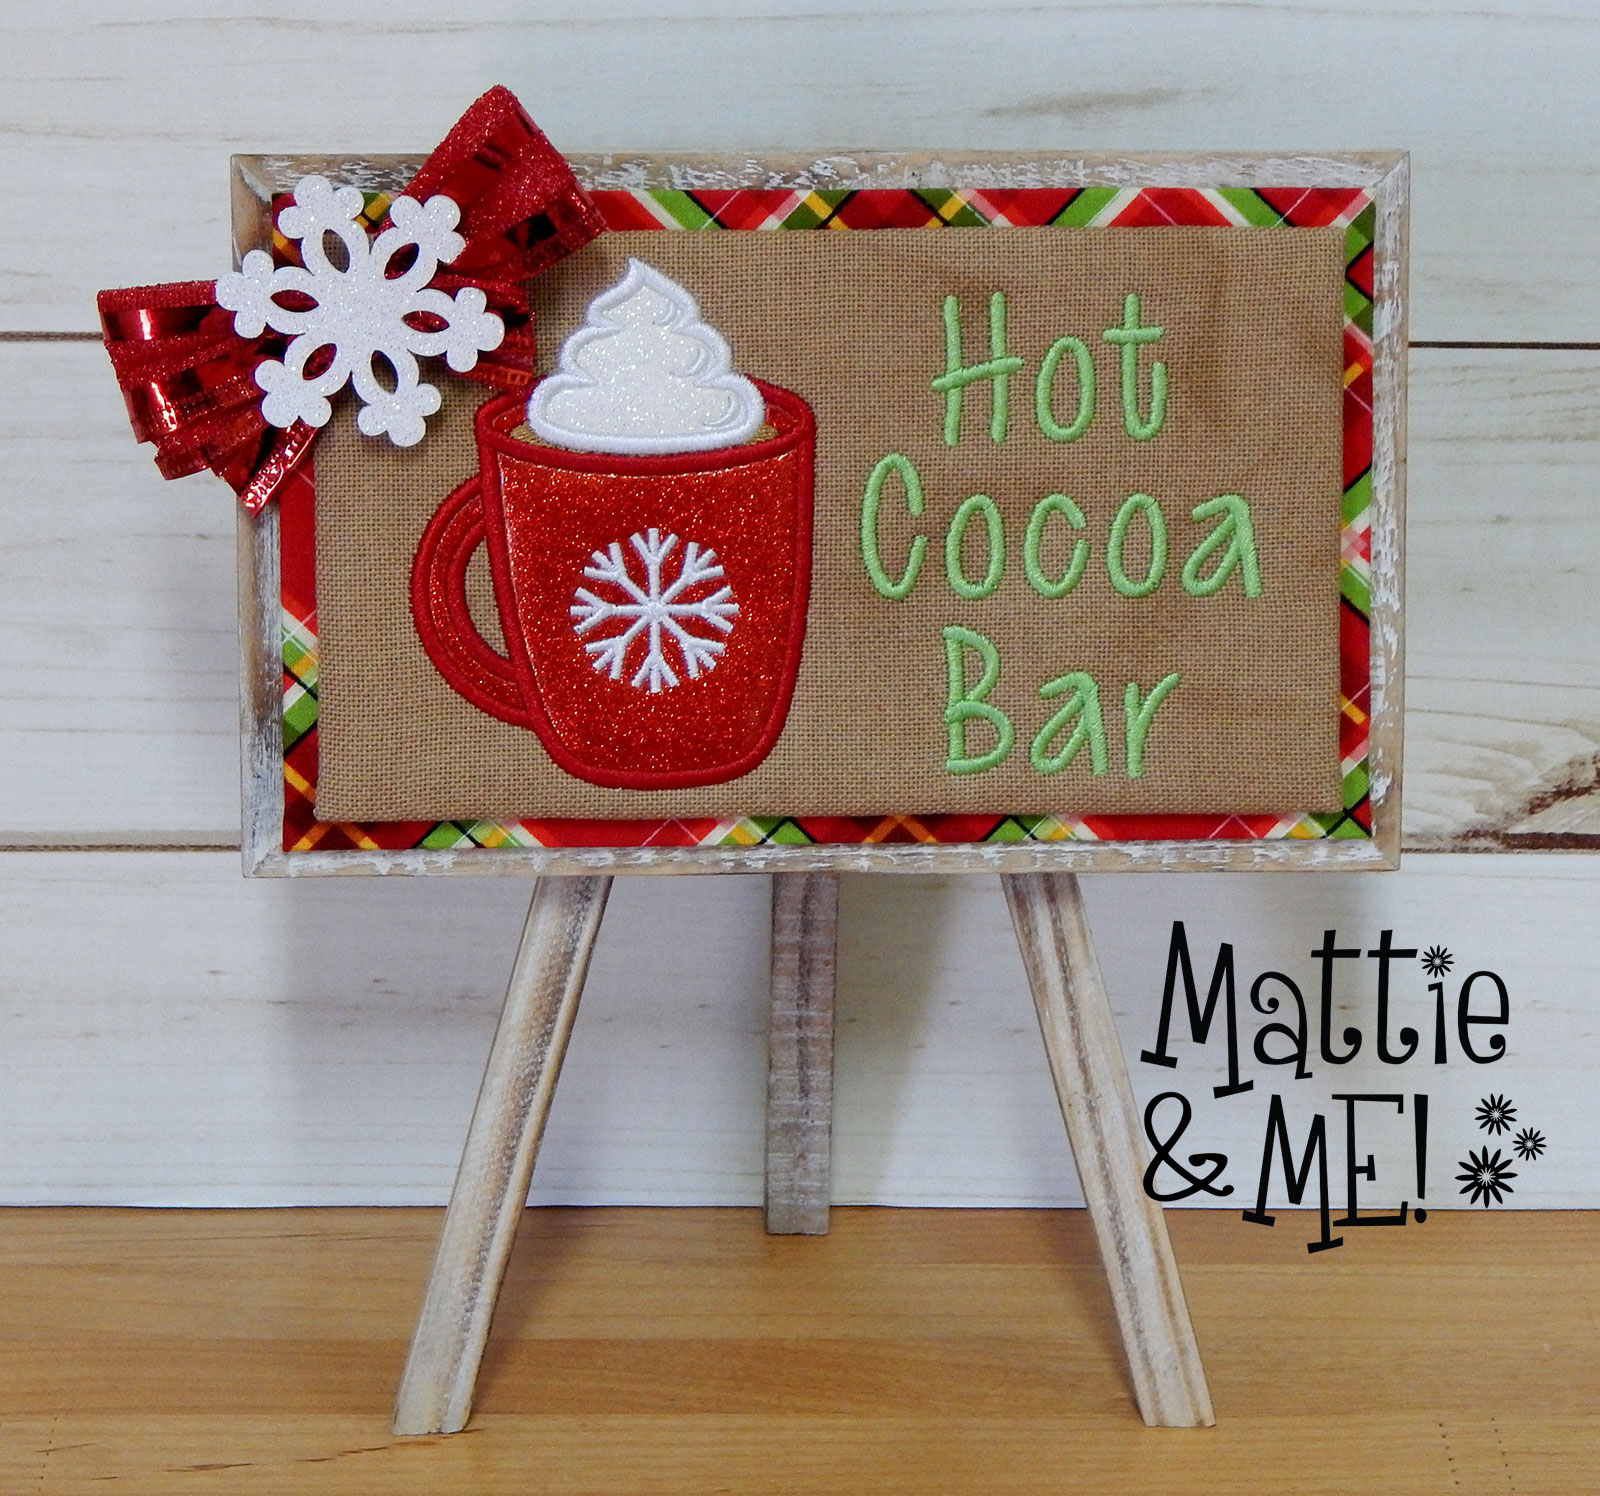 finished hot cocoa bar pedestal sign